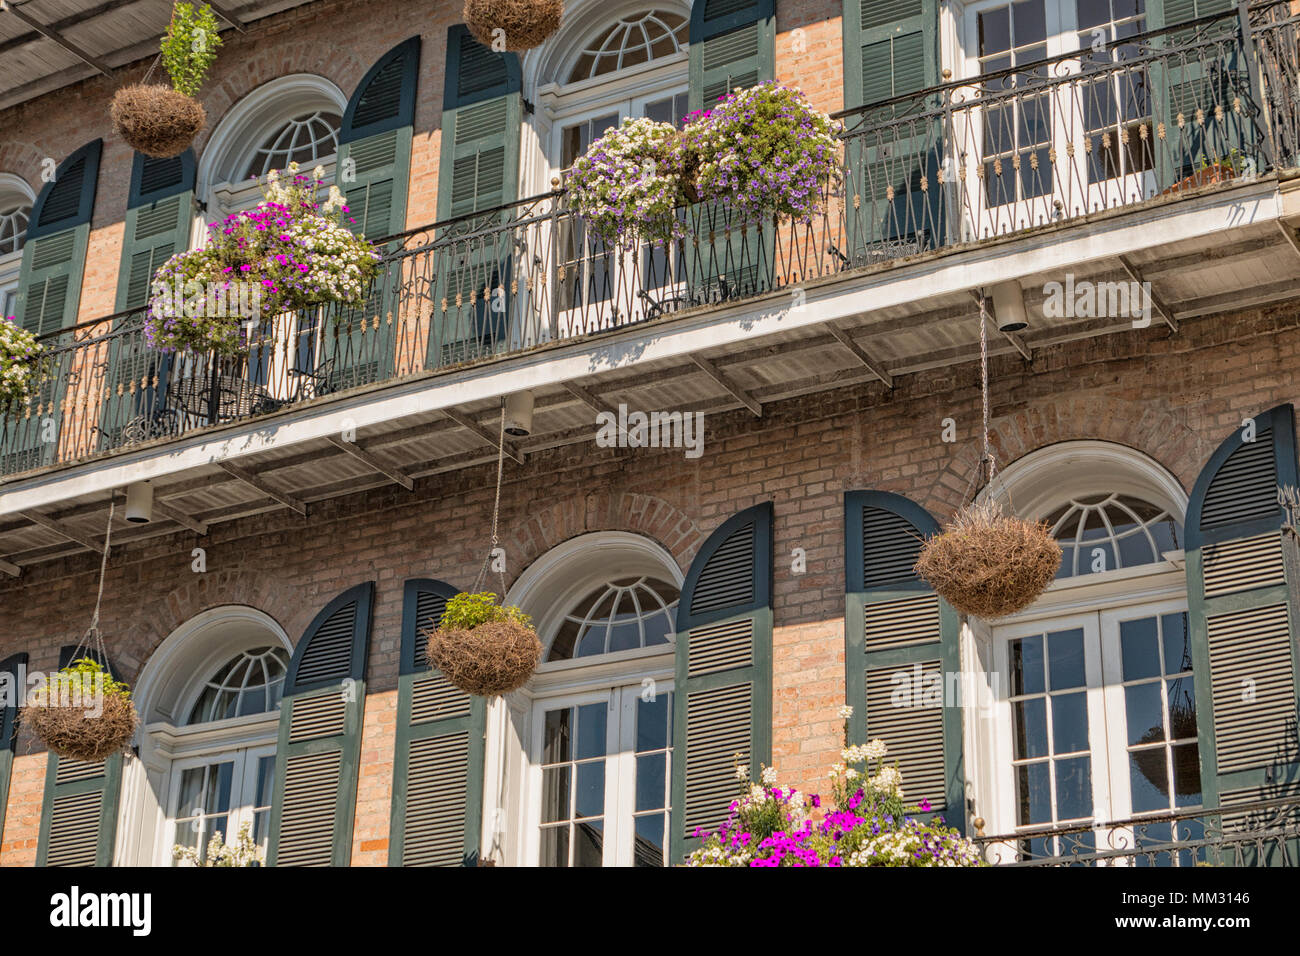 over balcony planters Hanging Planters And Window Boxes Hanging From A Wrought